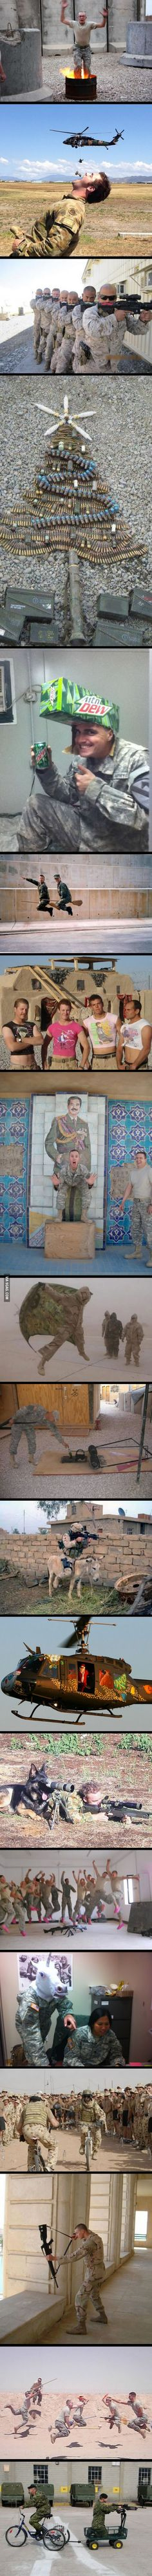 What Soldiers Do On Their Days Off